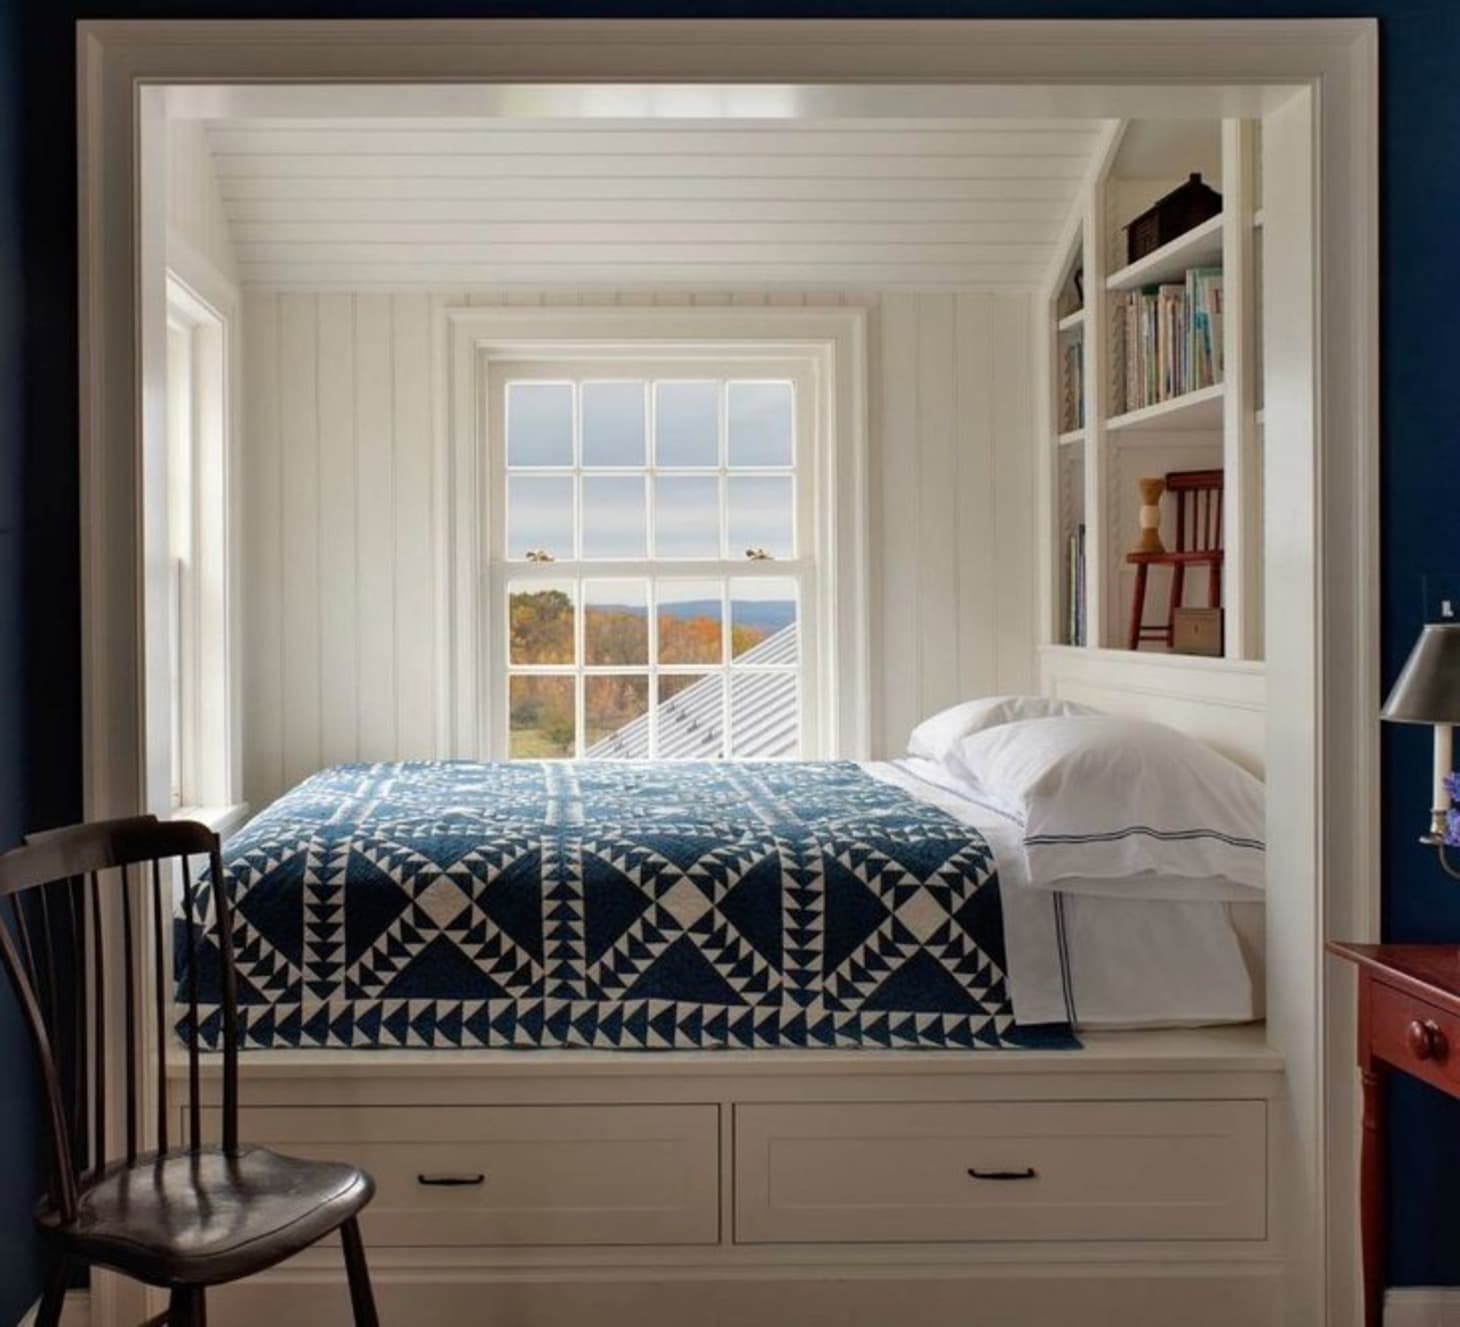 Small Bedroom Solutions: Cozy Bed Nooks | Apartment Therapy